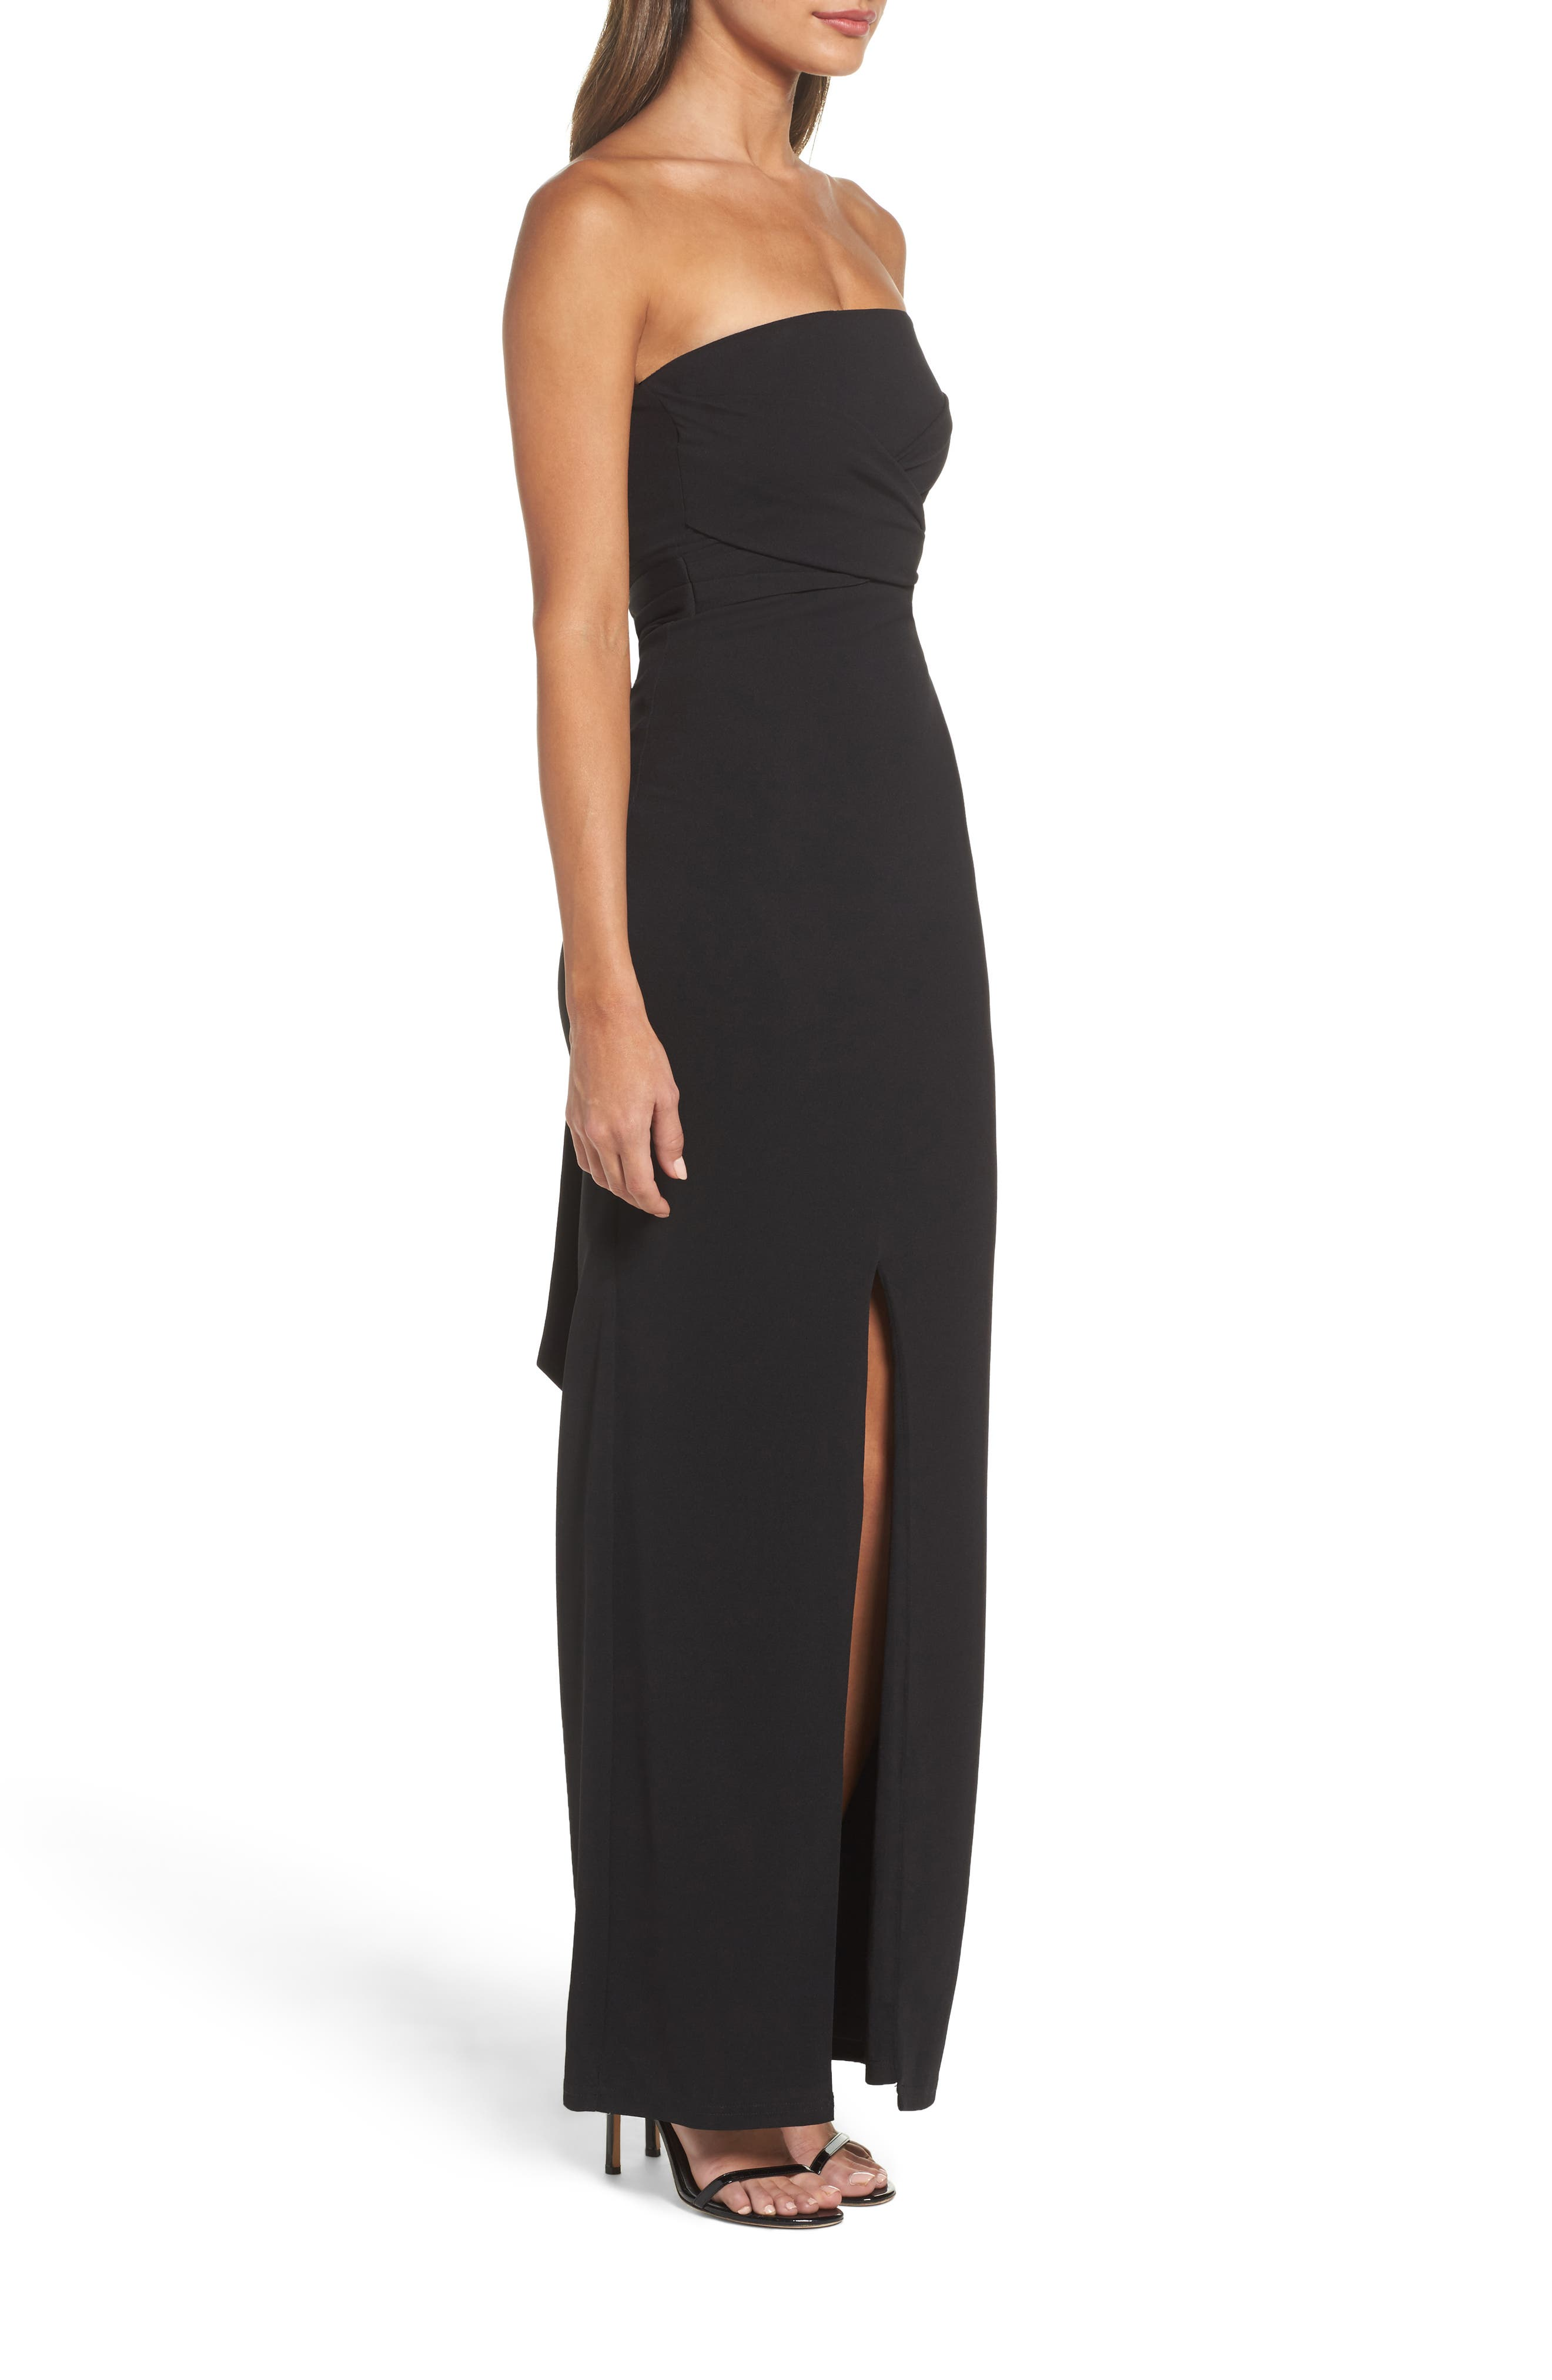 LULUS, Own the Night Strapless Maxi Dress, Alternate thumbnail 4, color, BLACK